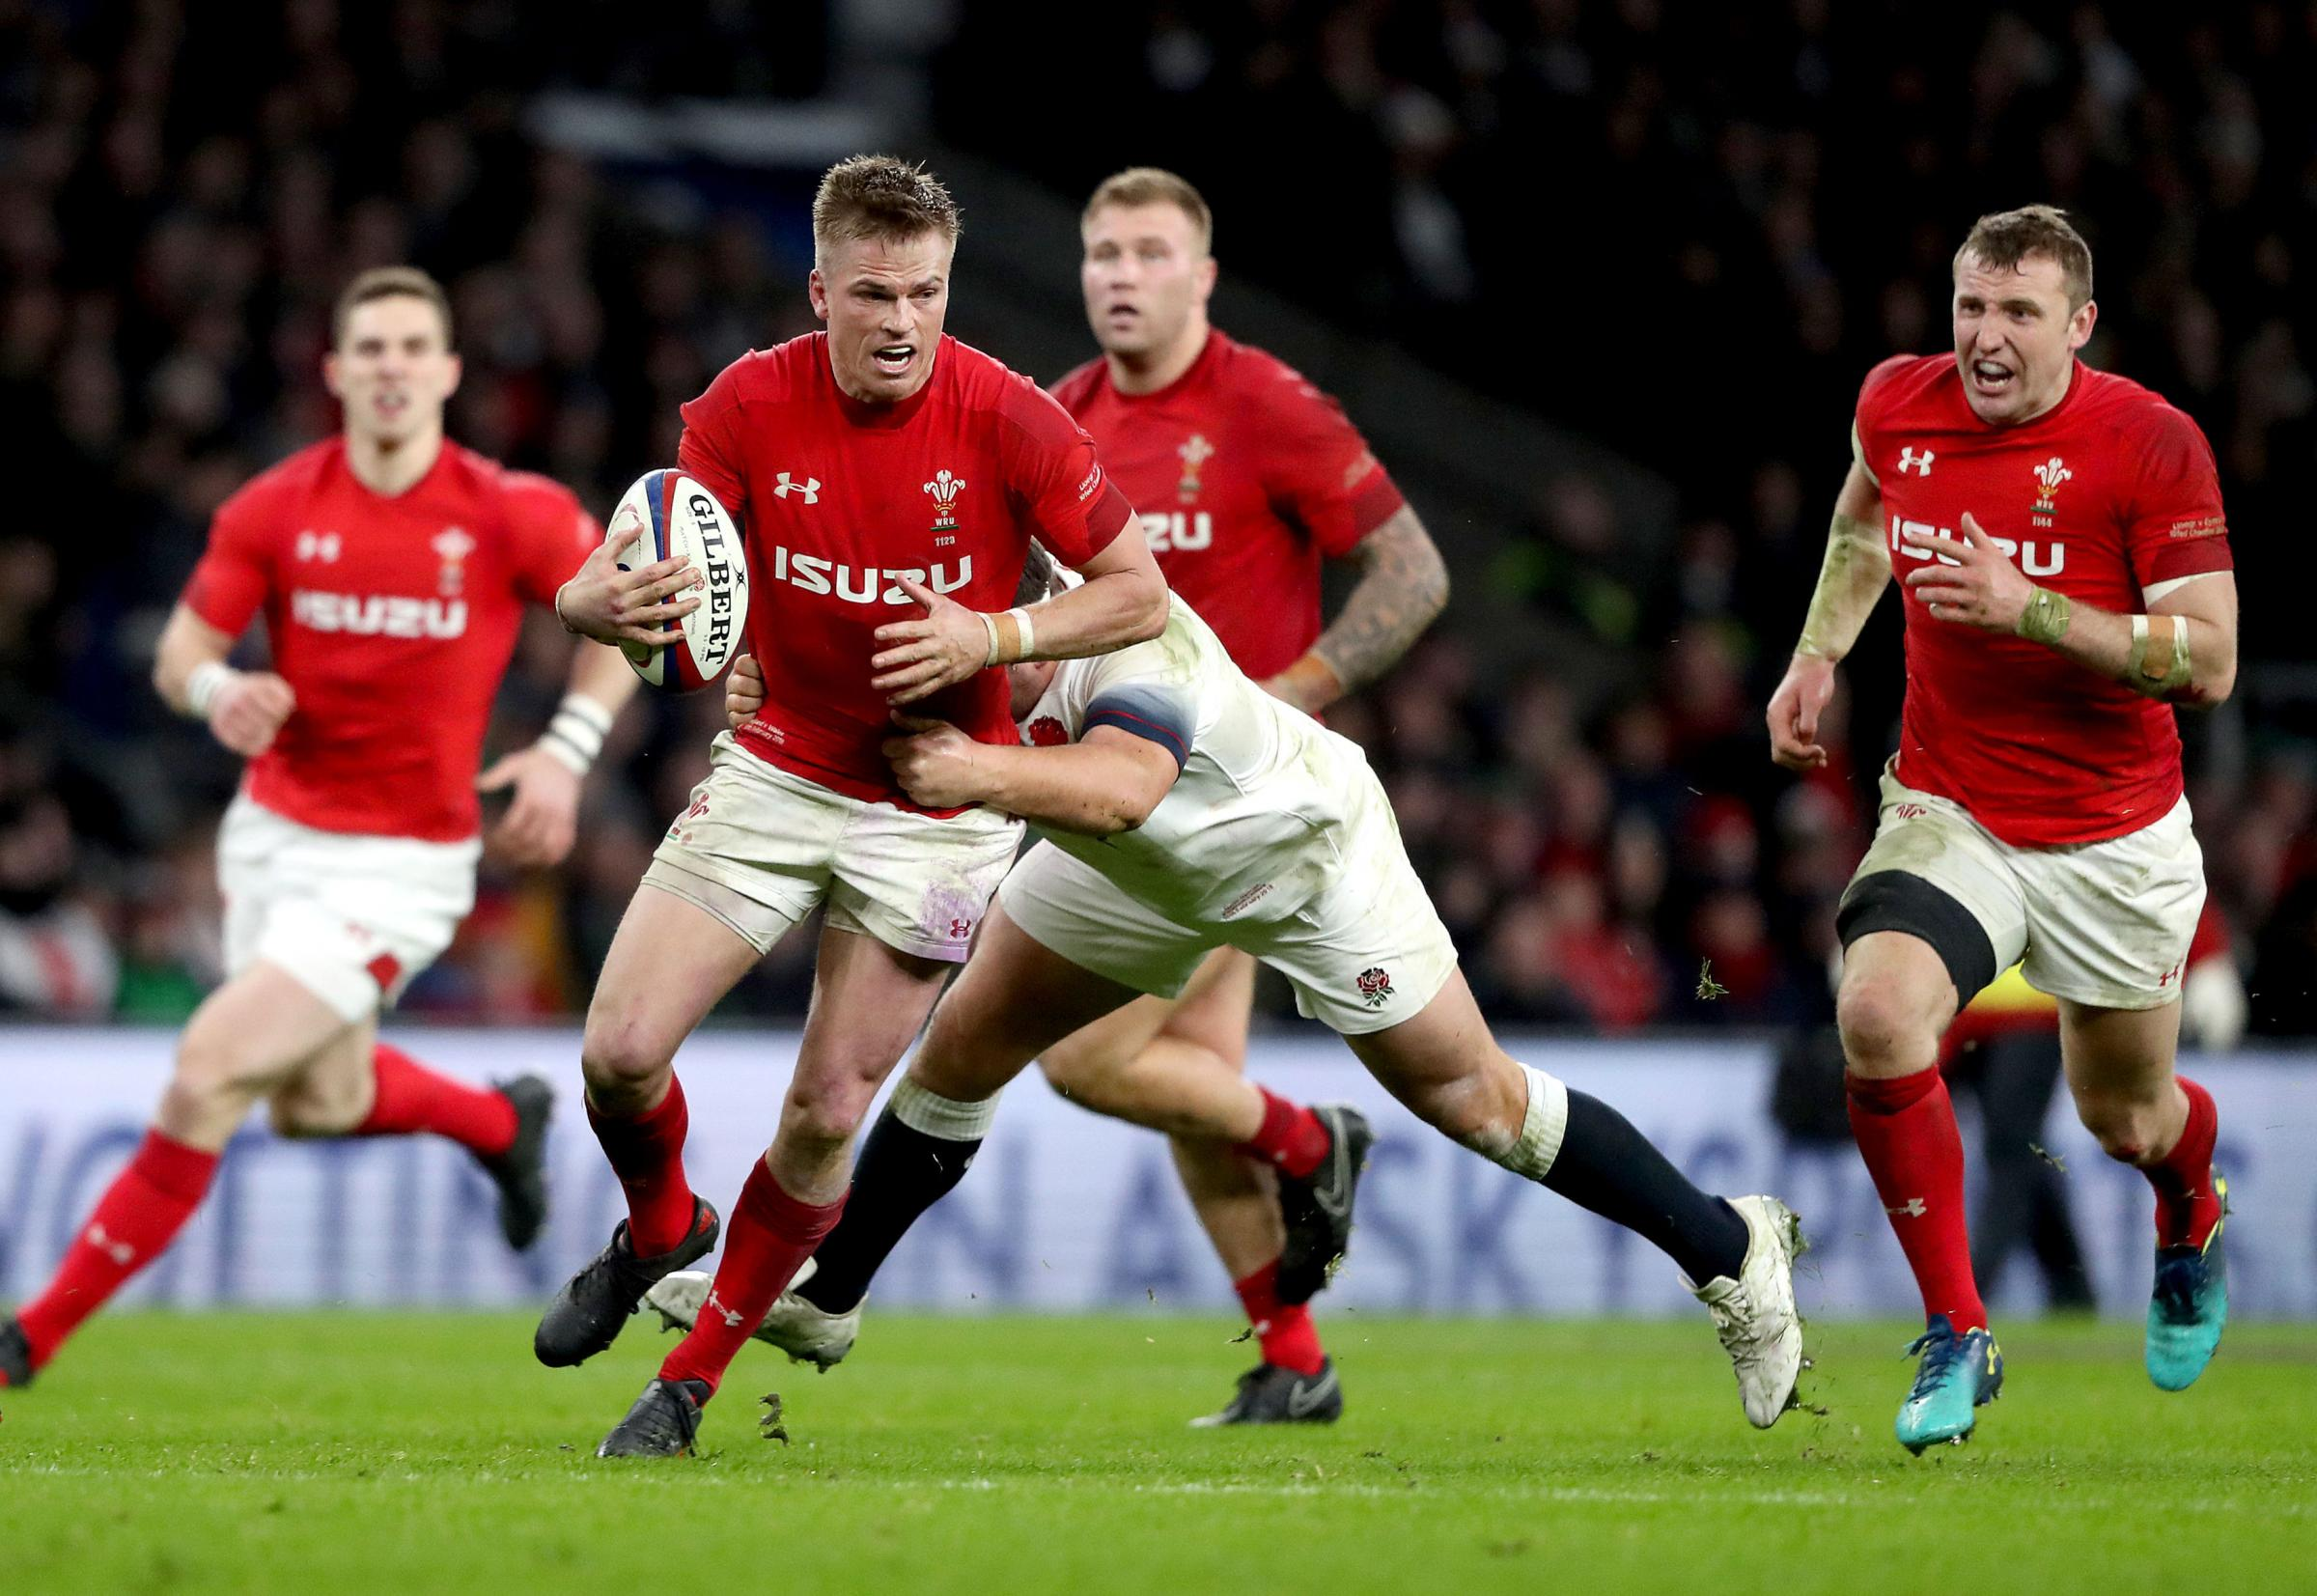 CHANCE AT 10: Fly-half Gareth Anscombe is pulling the strings for Wales this summer